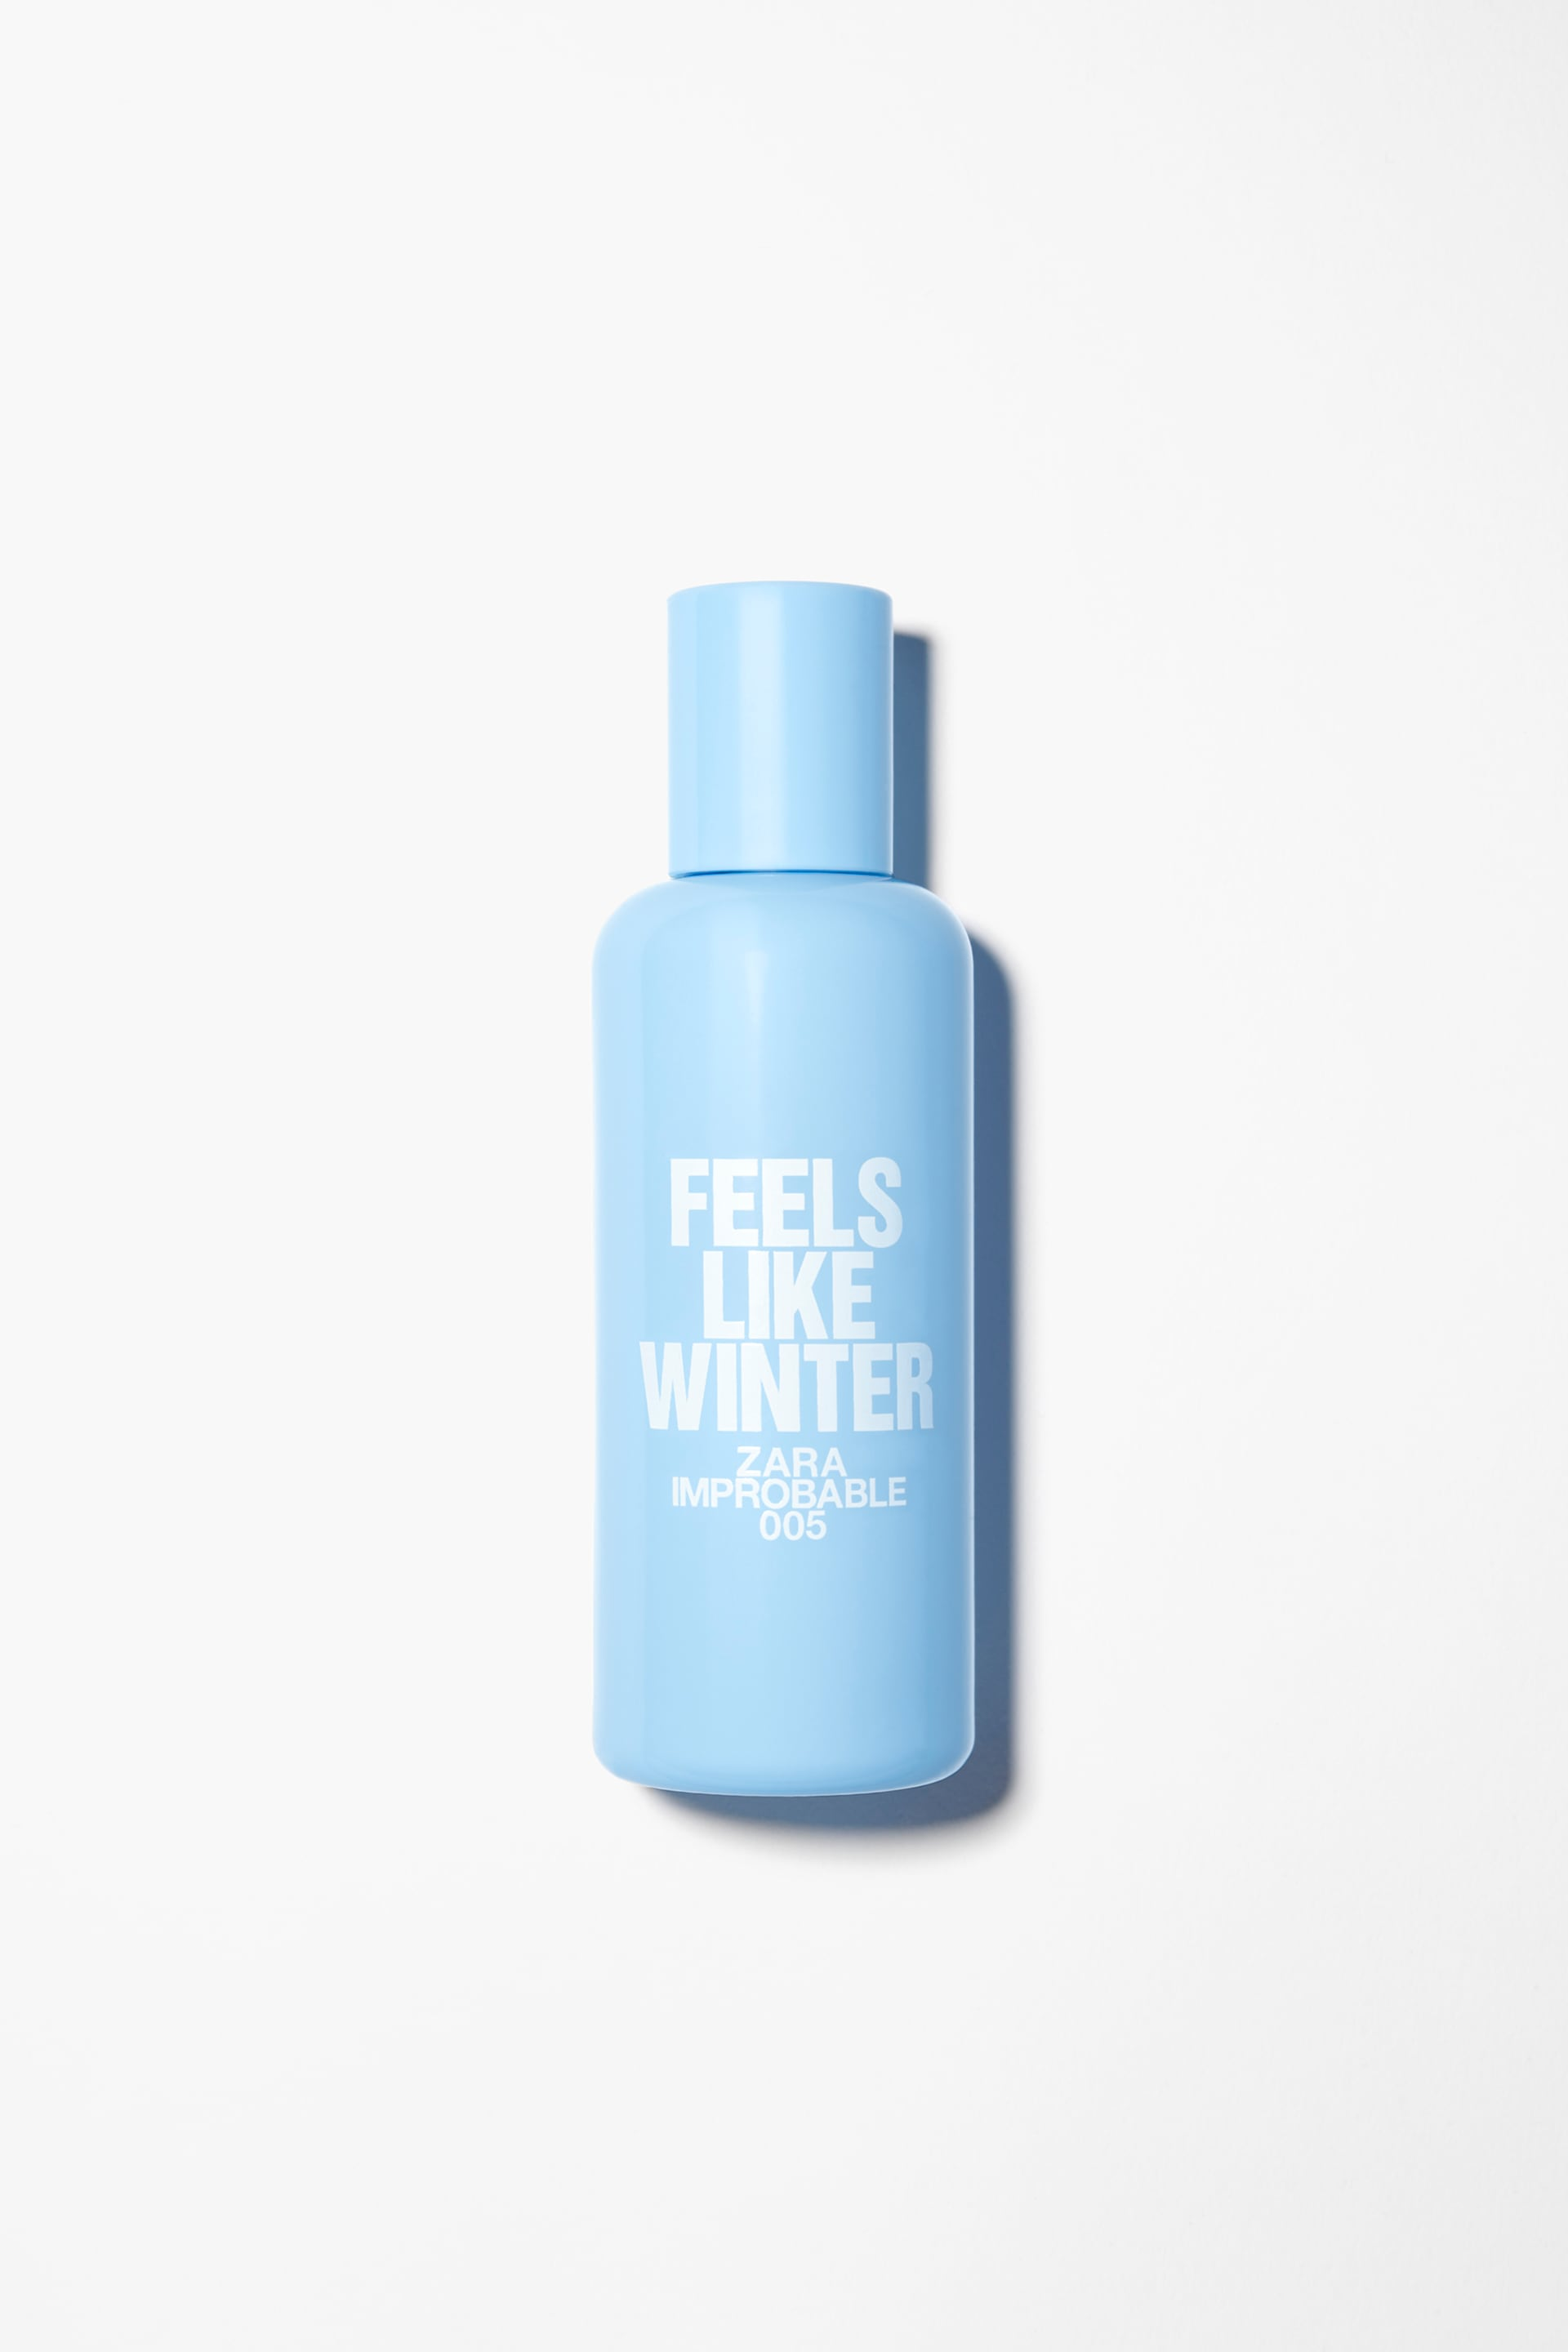 FEELS LIKE WINTER 30ML / 1.01 OZ